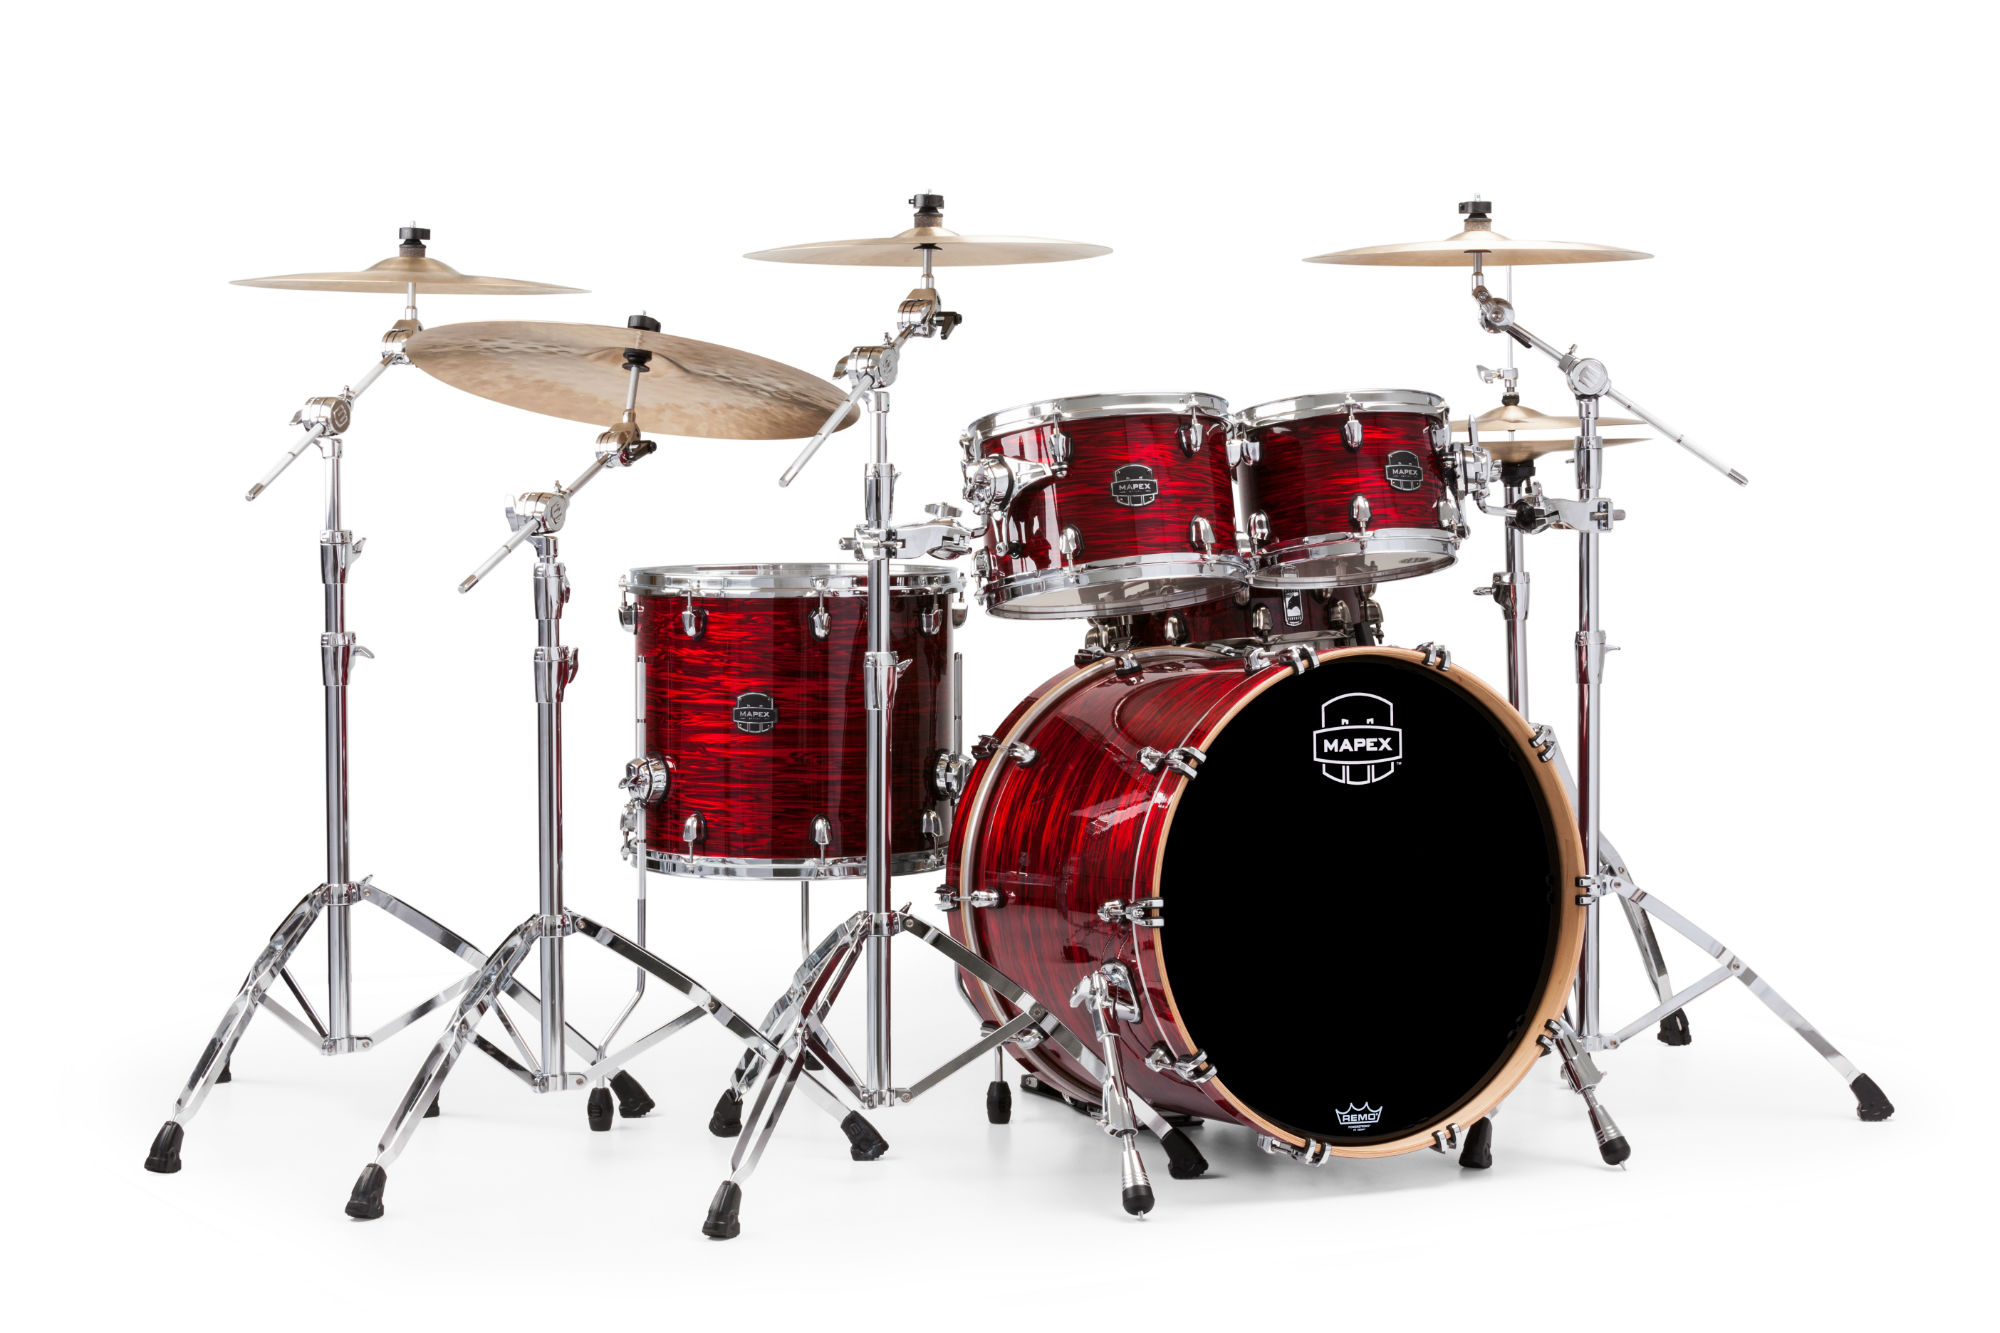 Mapex Saturn V MH Rock 4-piece shell pack with SONIClear Edge - SV529XUPC - Red Strata Pearl